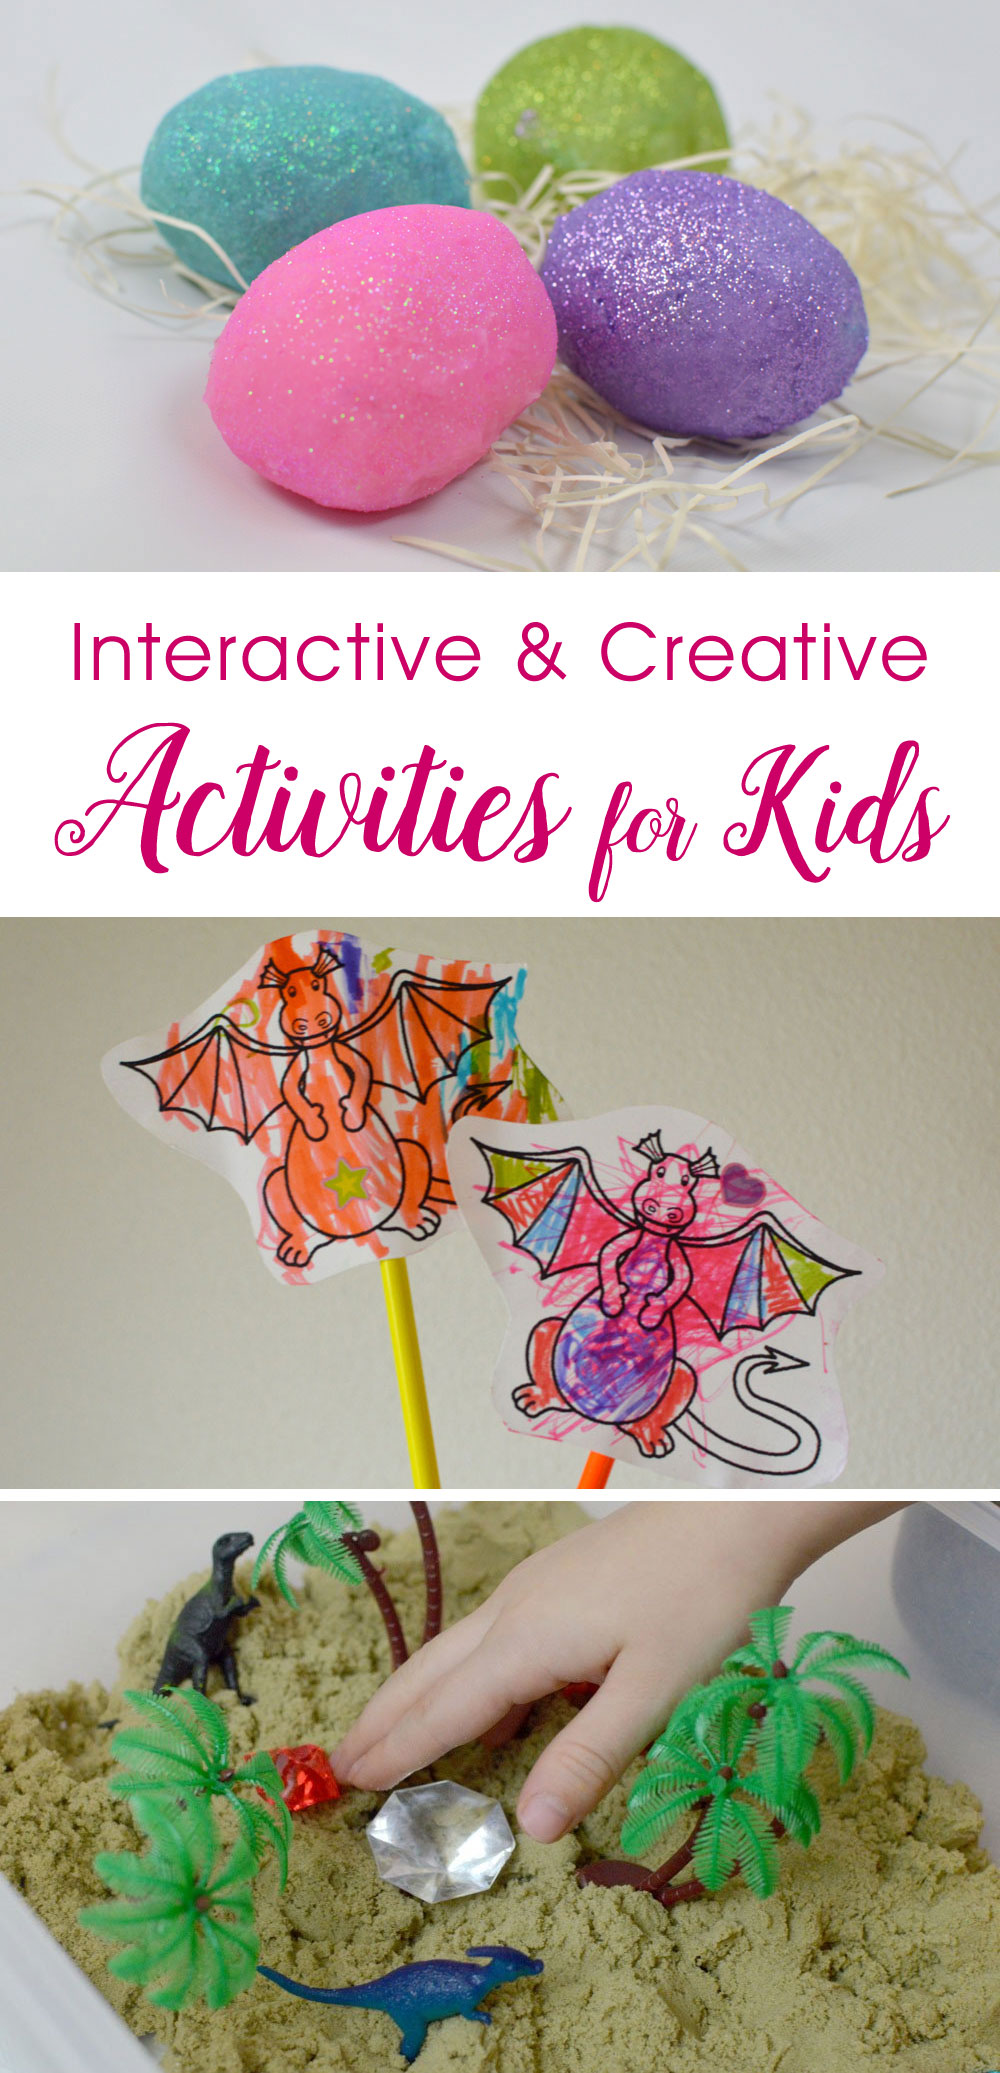 Sensory sparkle playdough, DIY character puppets, and discovery boxes - Mommy Scene